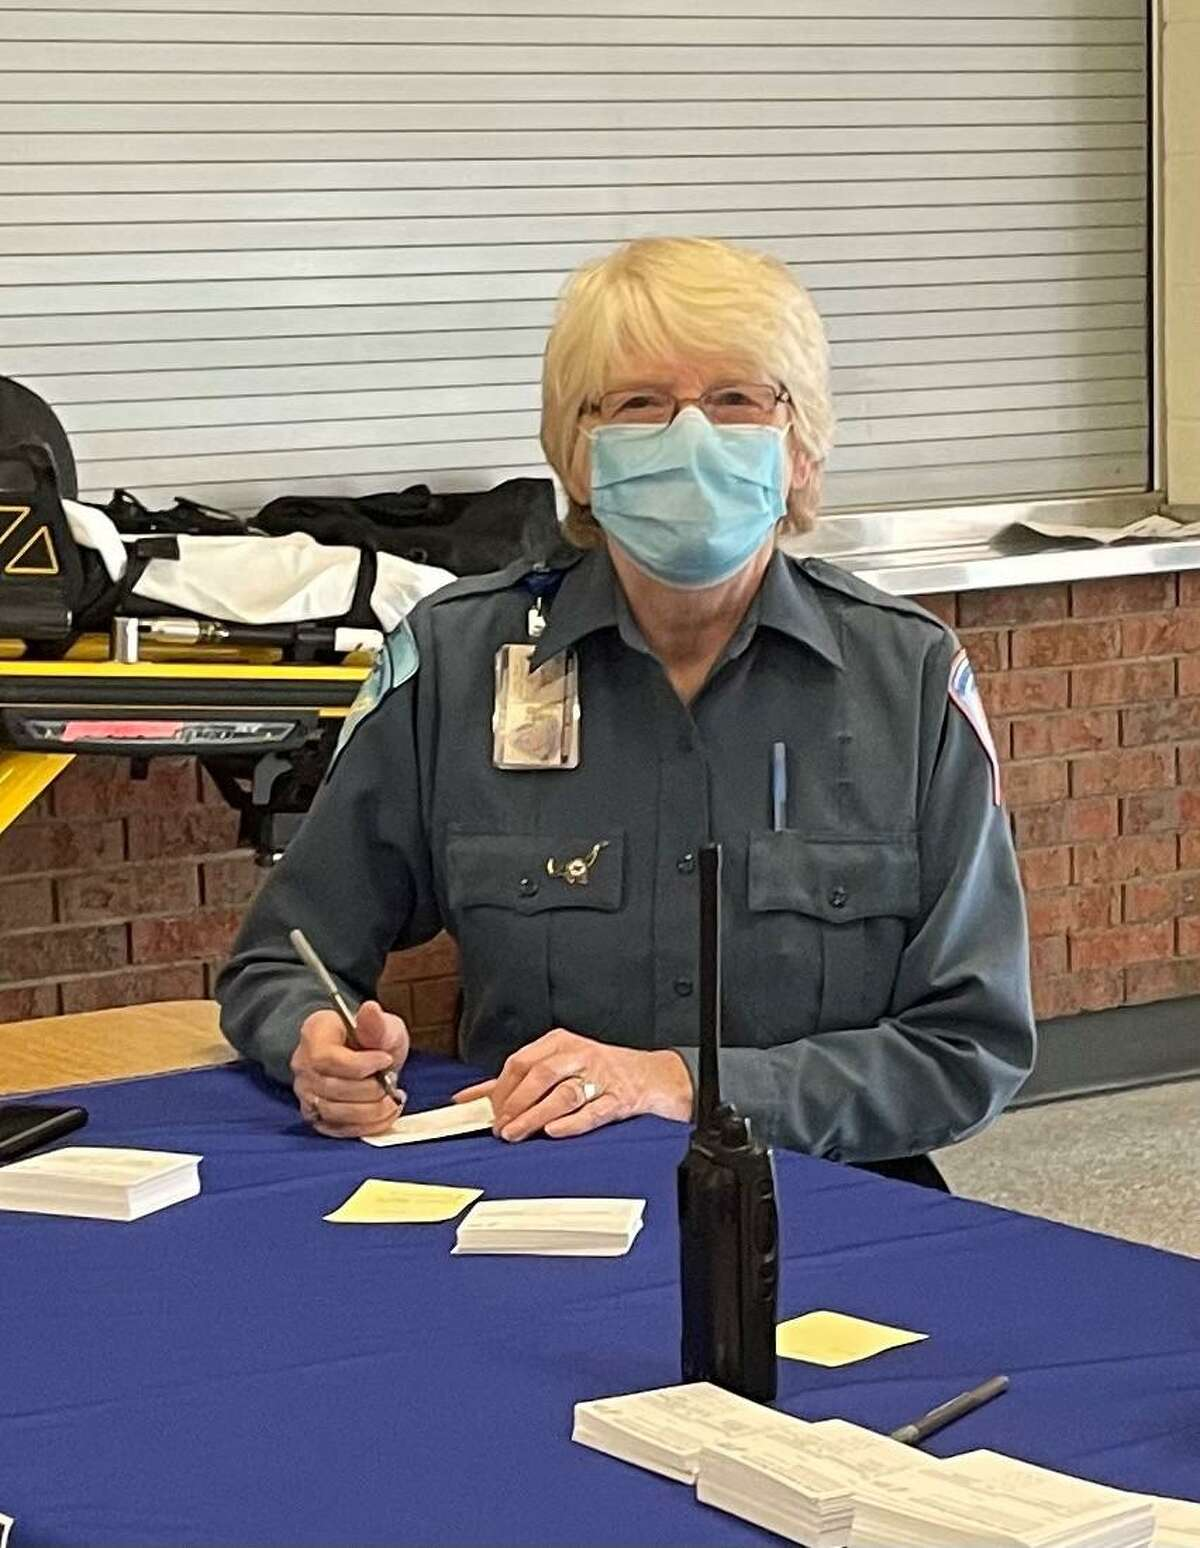 Trumbull EMS volunteer Barbara Crandall works the registration table at the Jan. 23 vaccination clinic at Trumbull High School.